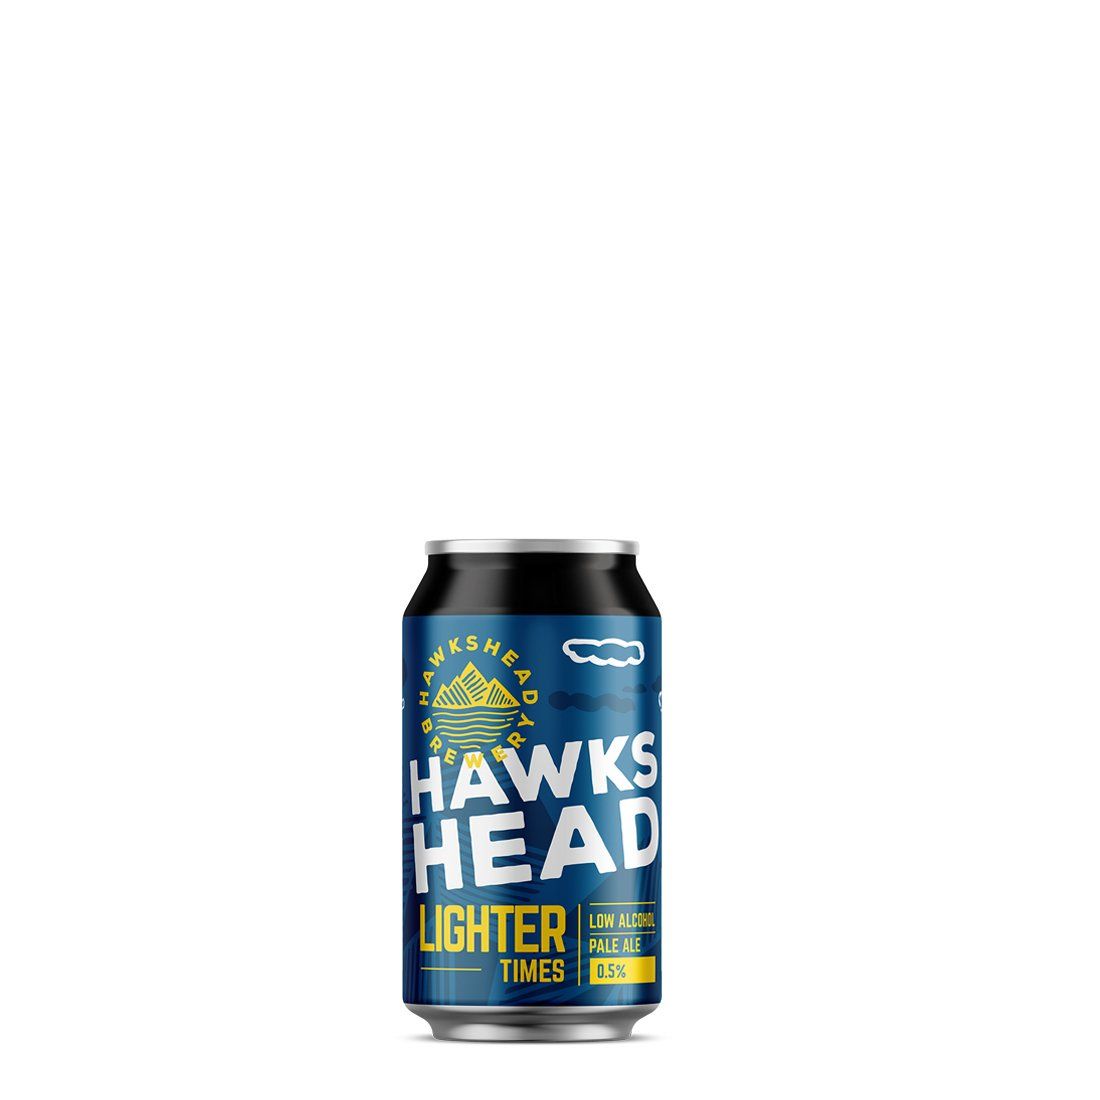 Hawkshead Lighter Times Low Alcohol 0.5% Pale Ale 12 Can Case - HawksheadBrewery